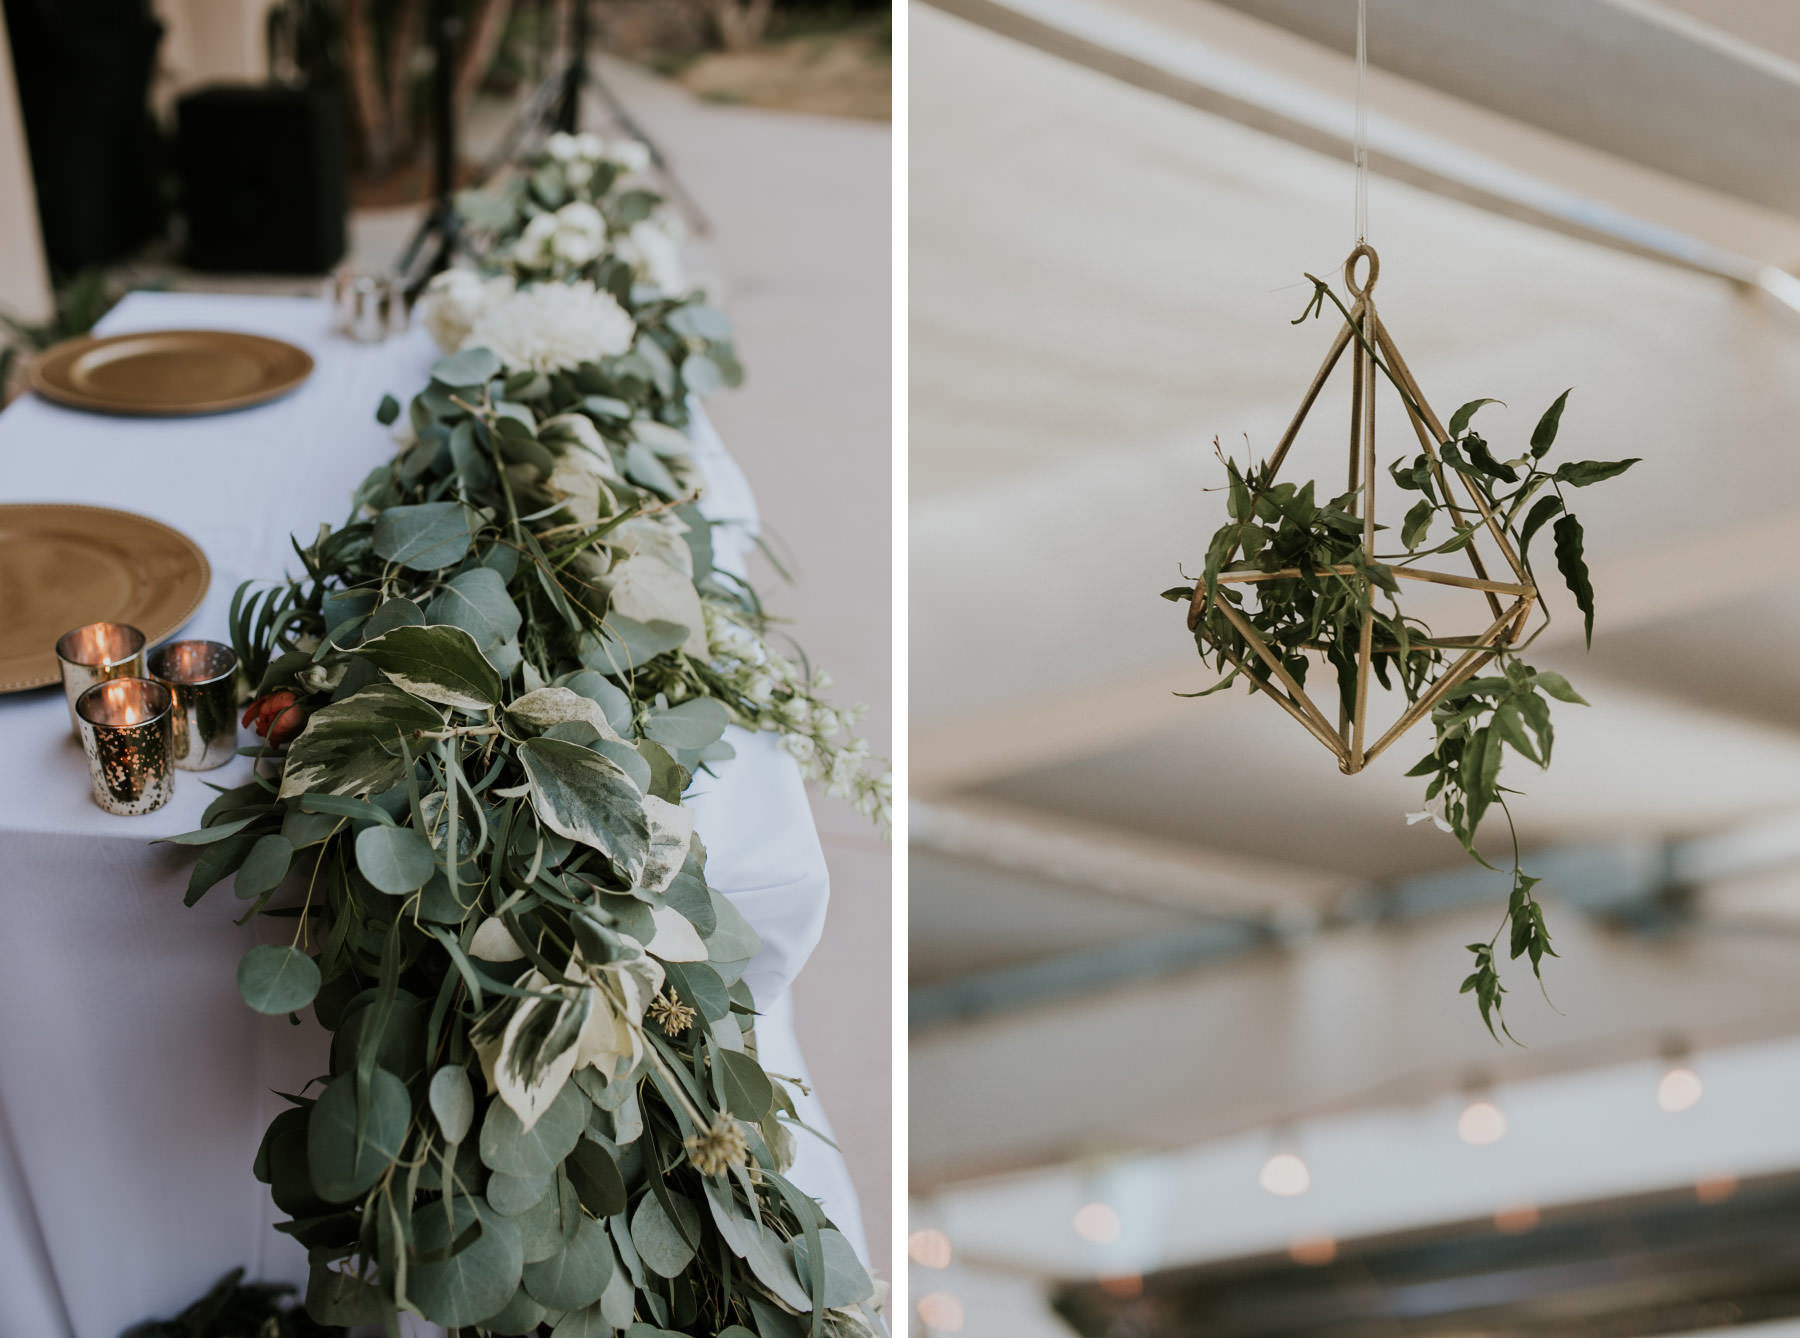 Eucalyptus table garland and geometric plant hanger